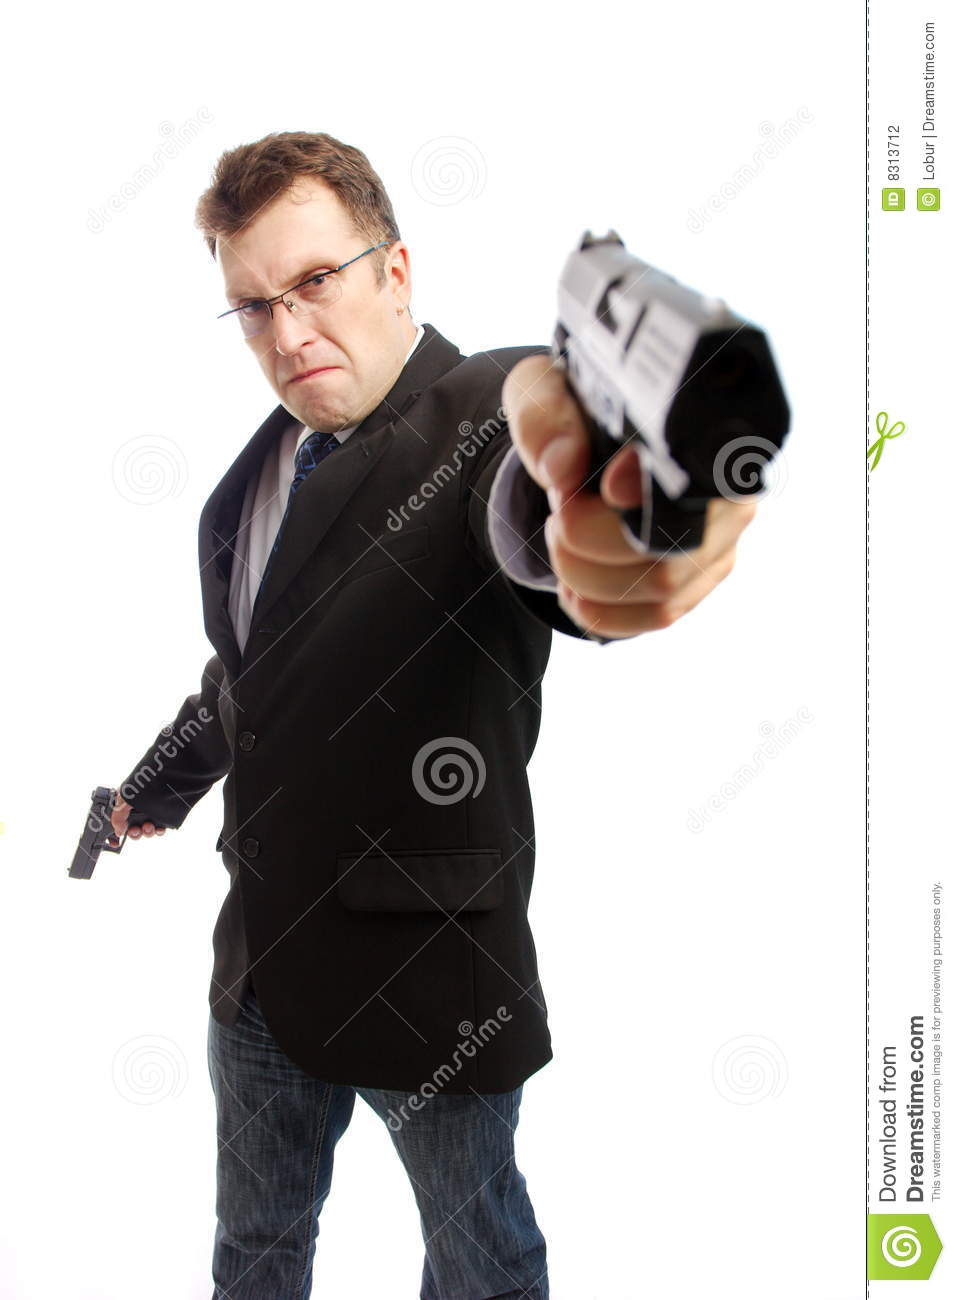 Aimed businessman criminal gun